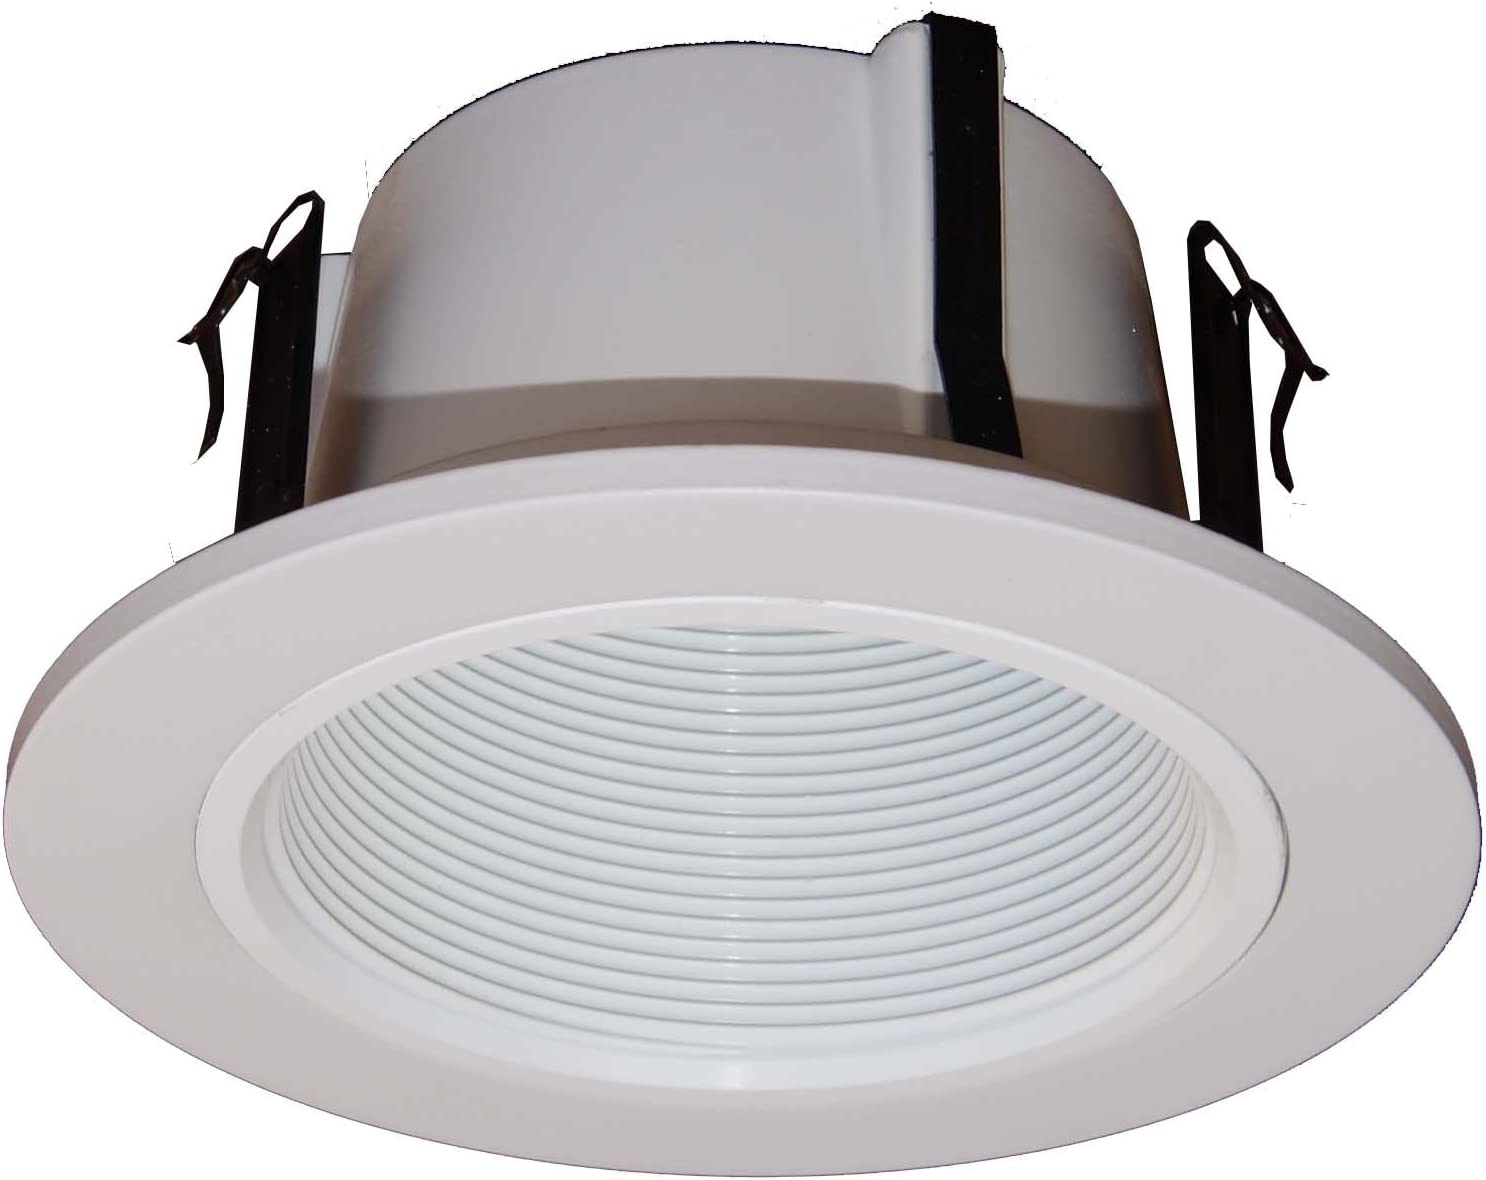 6 Pack-4 Inch Open Baffle Trim with Bracket for Line Voltage Recessed Light//Lighting-fit Halo//Juno